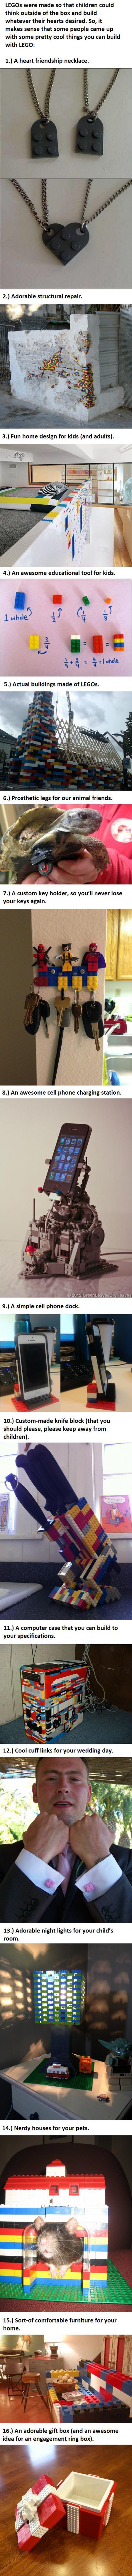 16 Awesome Uses For LEGO You Never Thought Of... -   Misc